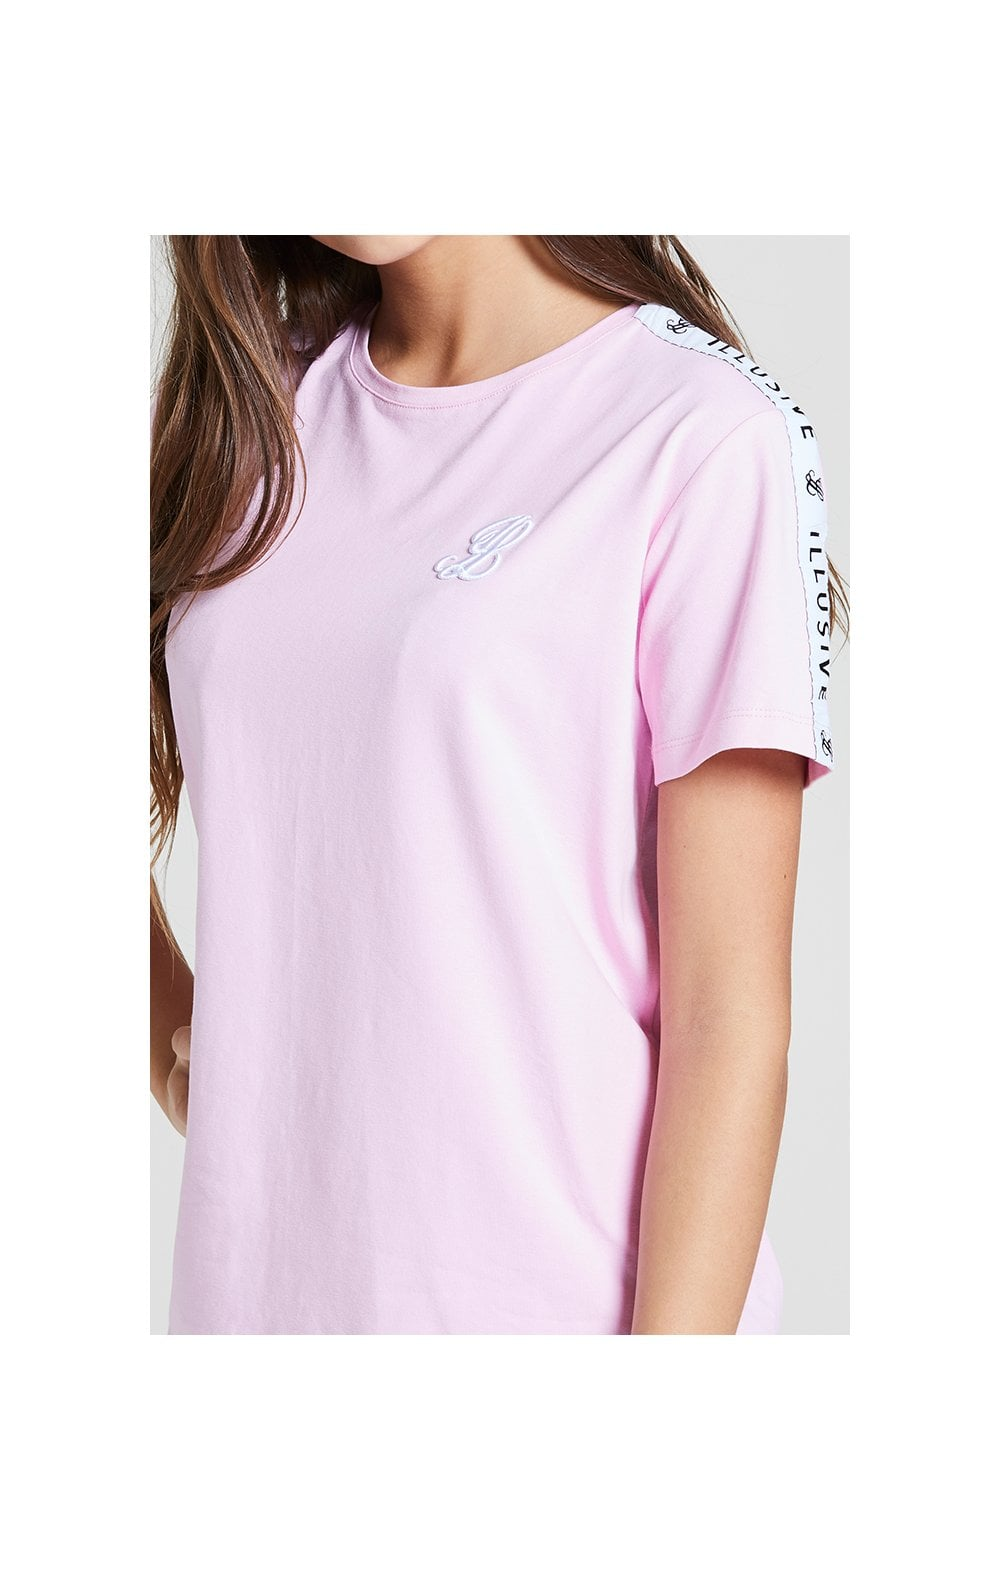 Illusive London BF Fit Taped Tee -  Pink  Kids Top Sizes: 15 YRS